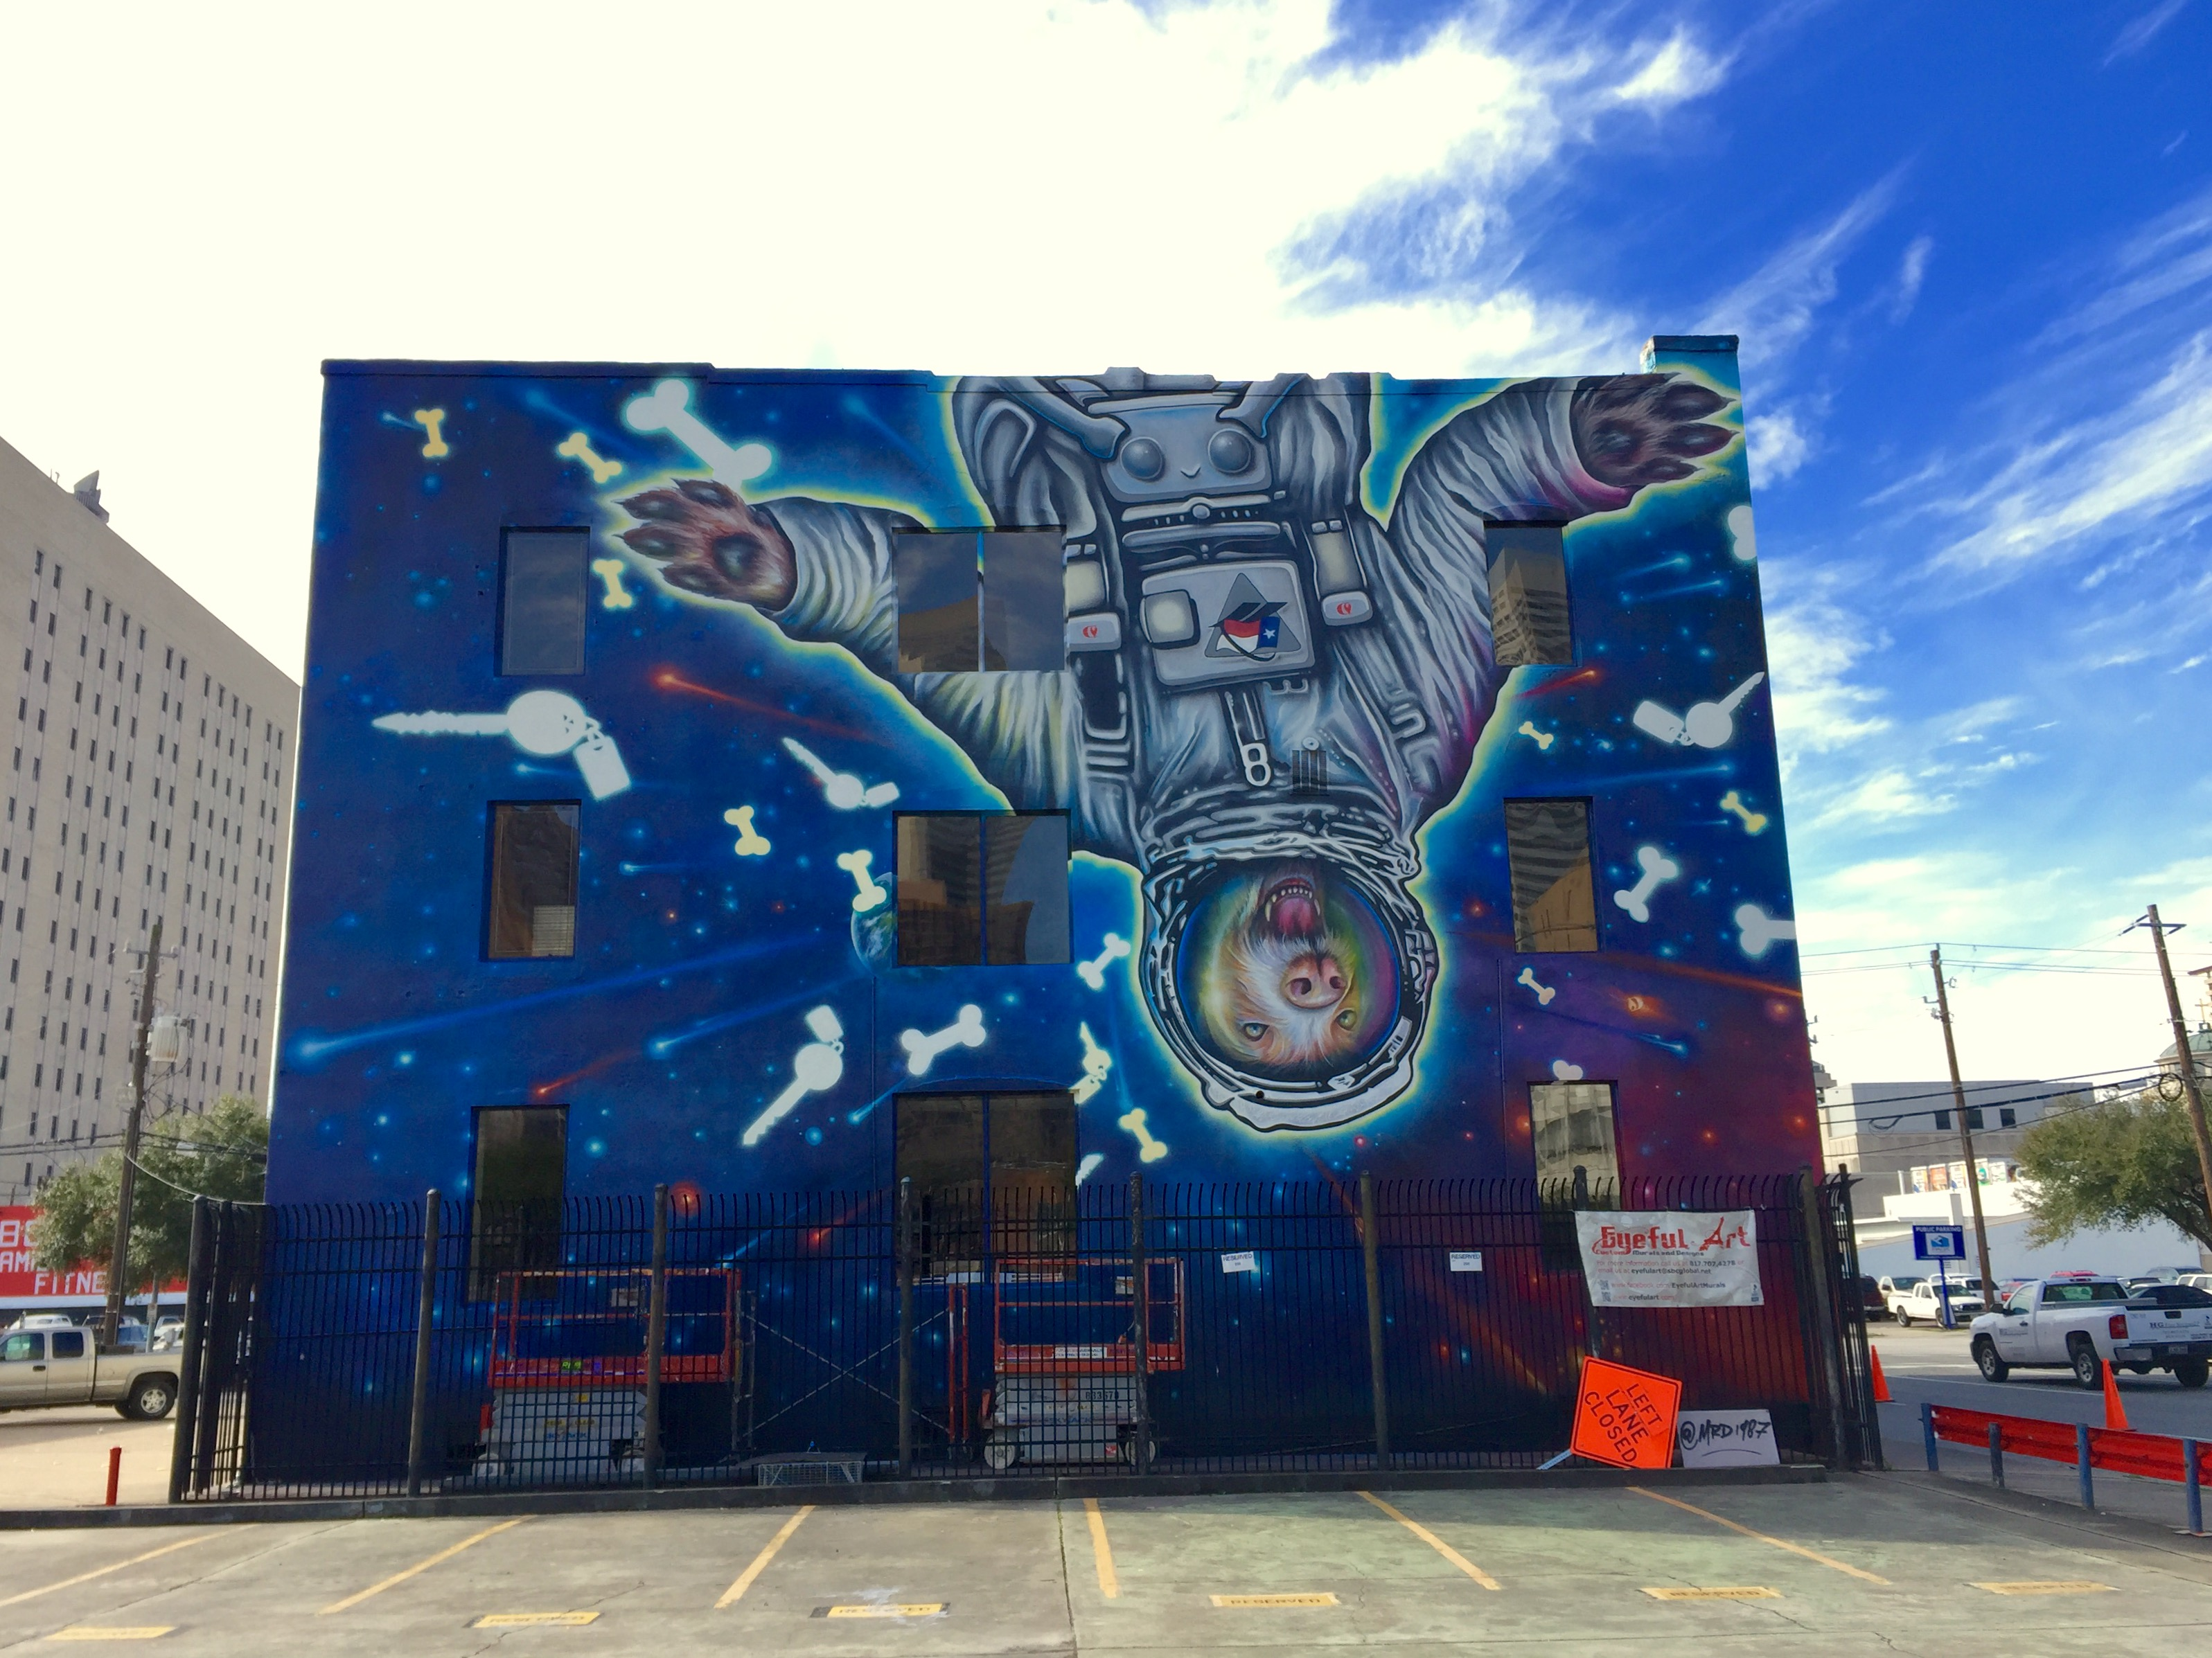 Picture of Space Suite Dog mural on Texas Direct Auto building